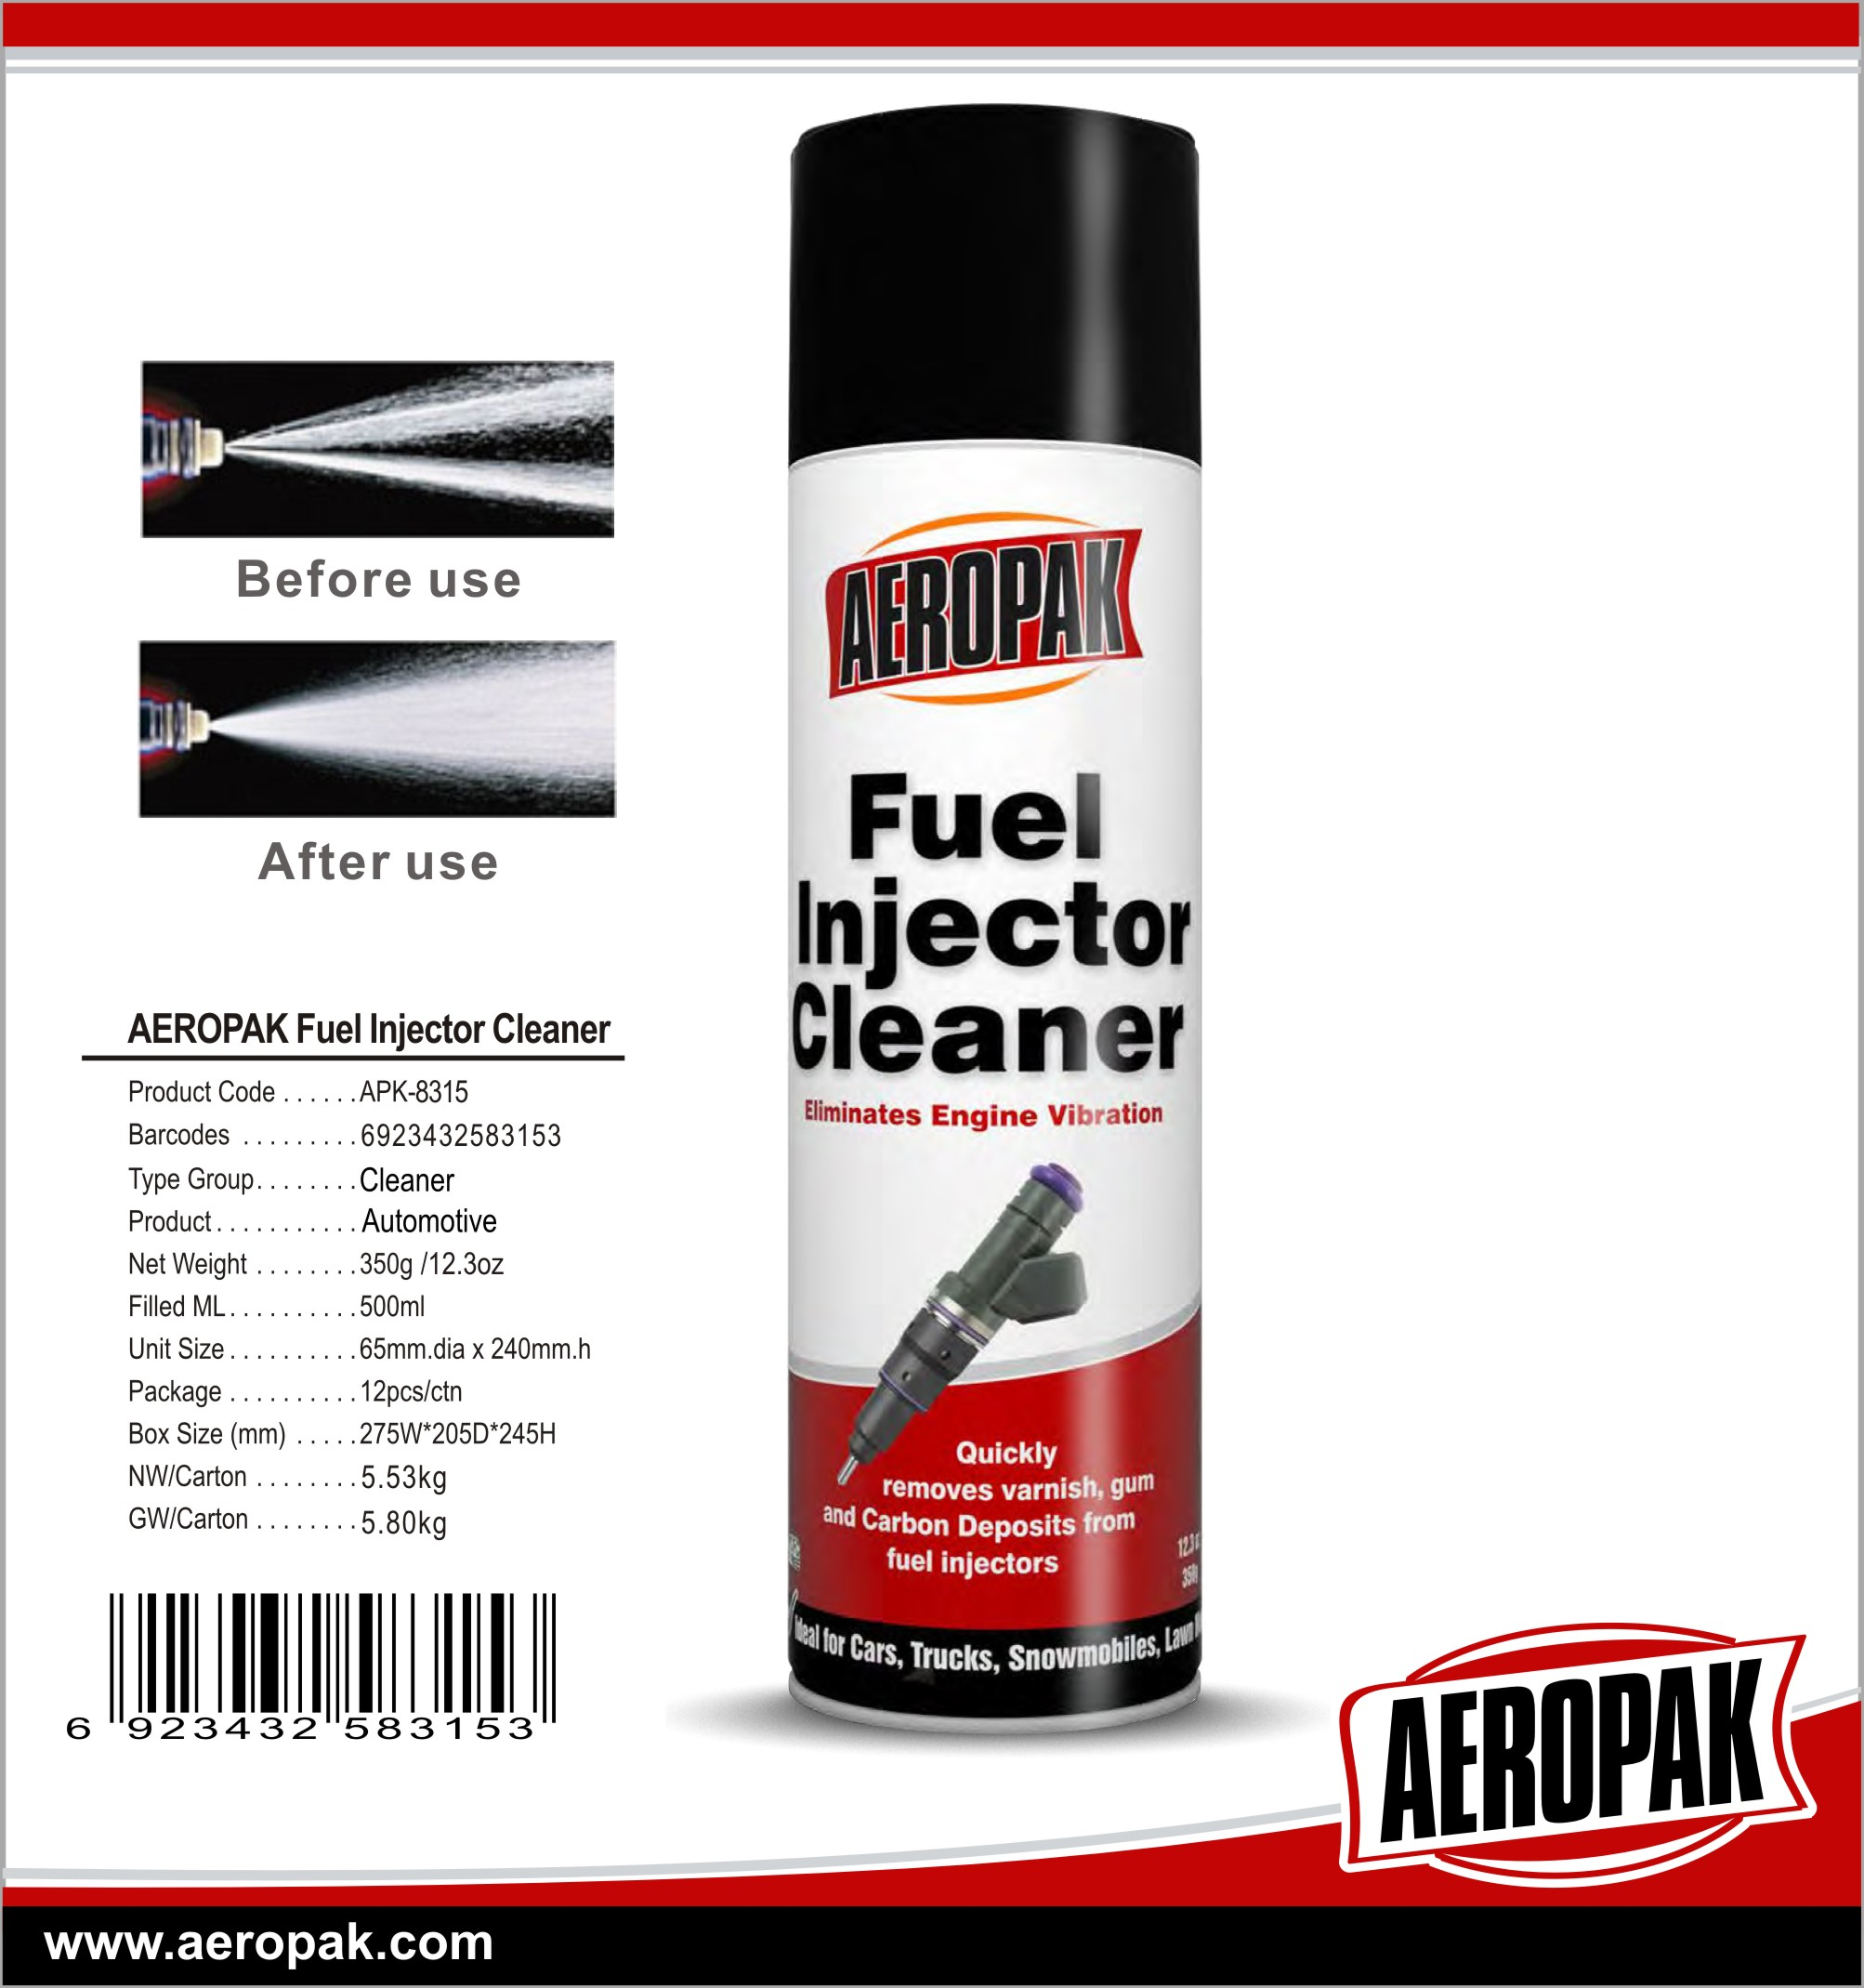 AEROPAK High Efficiency Fuel Injector Cleaner Liquid For Car Care